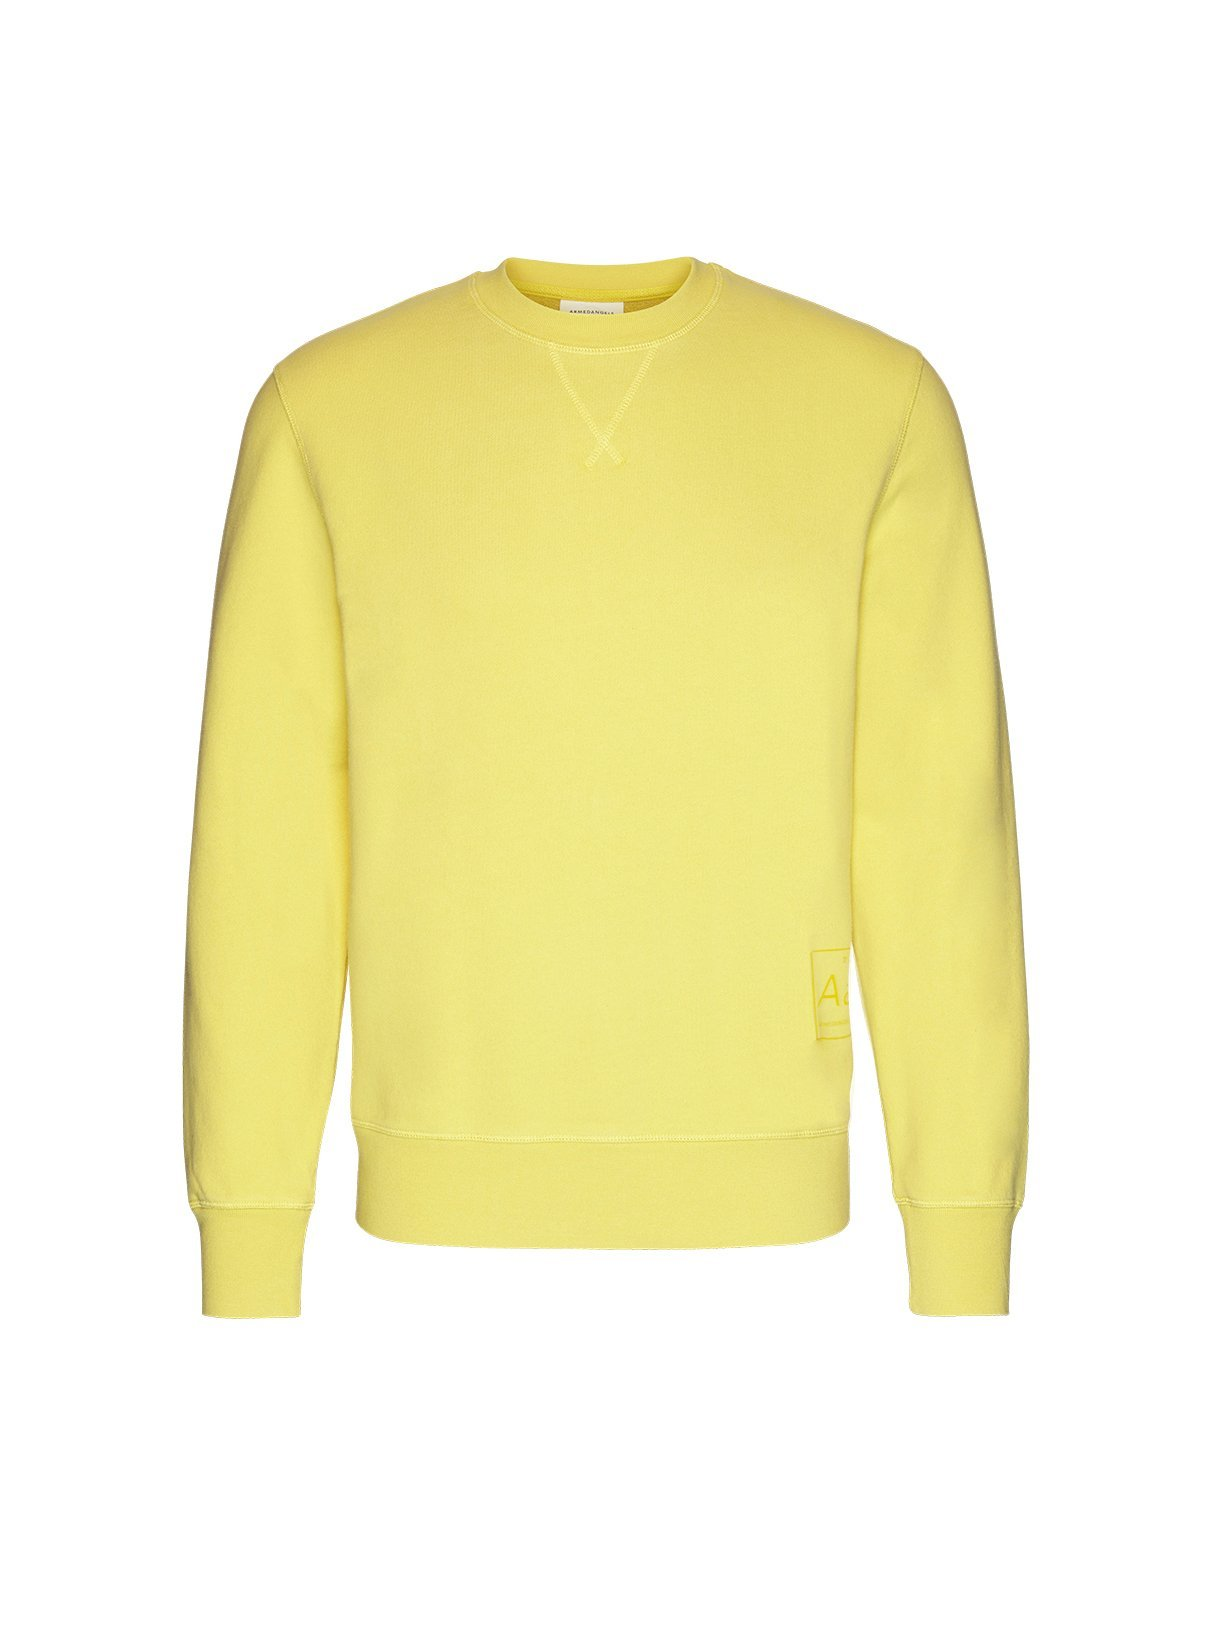 Silvaan - sweater - lemon yellow